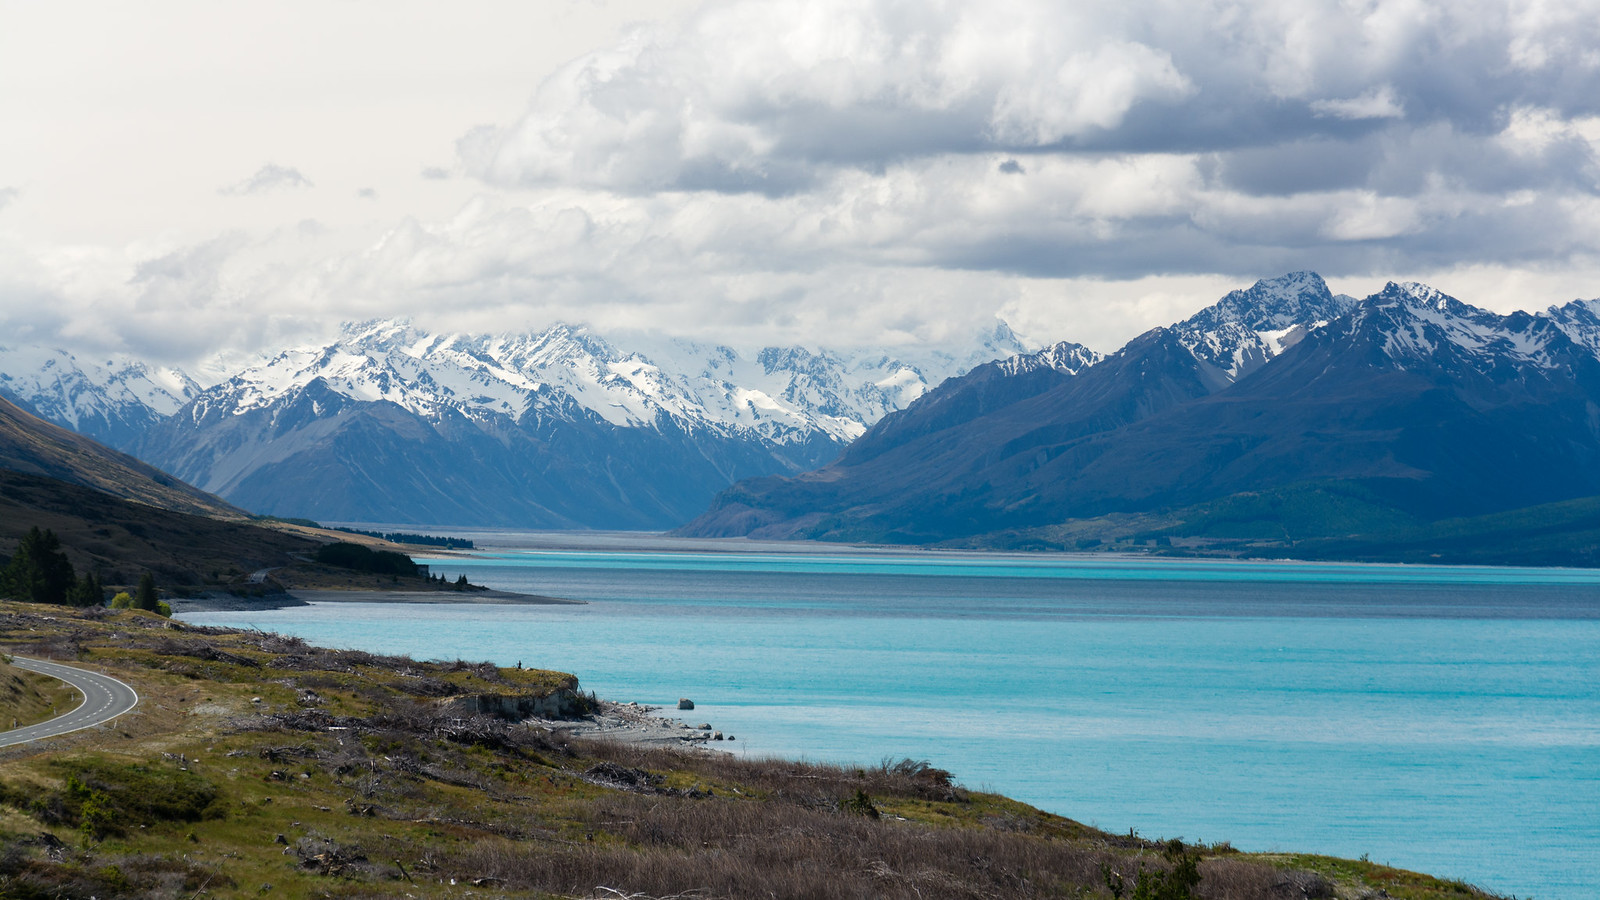 View toward Mount Cook, Lake Pukaki